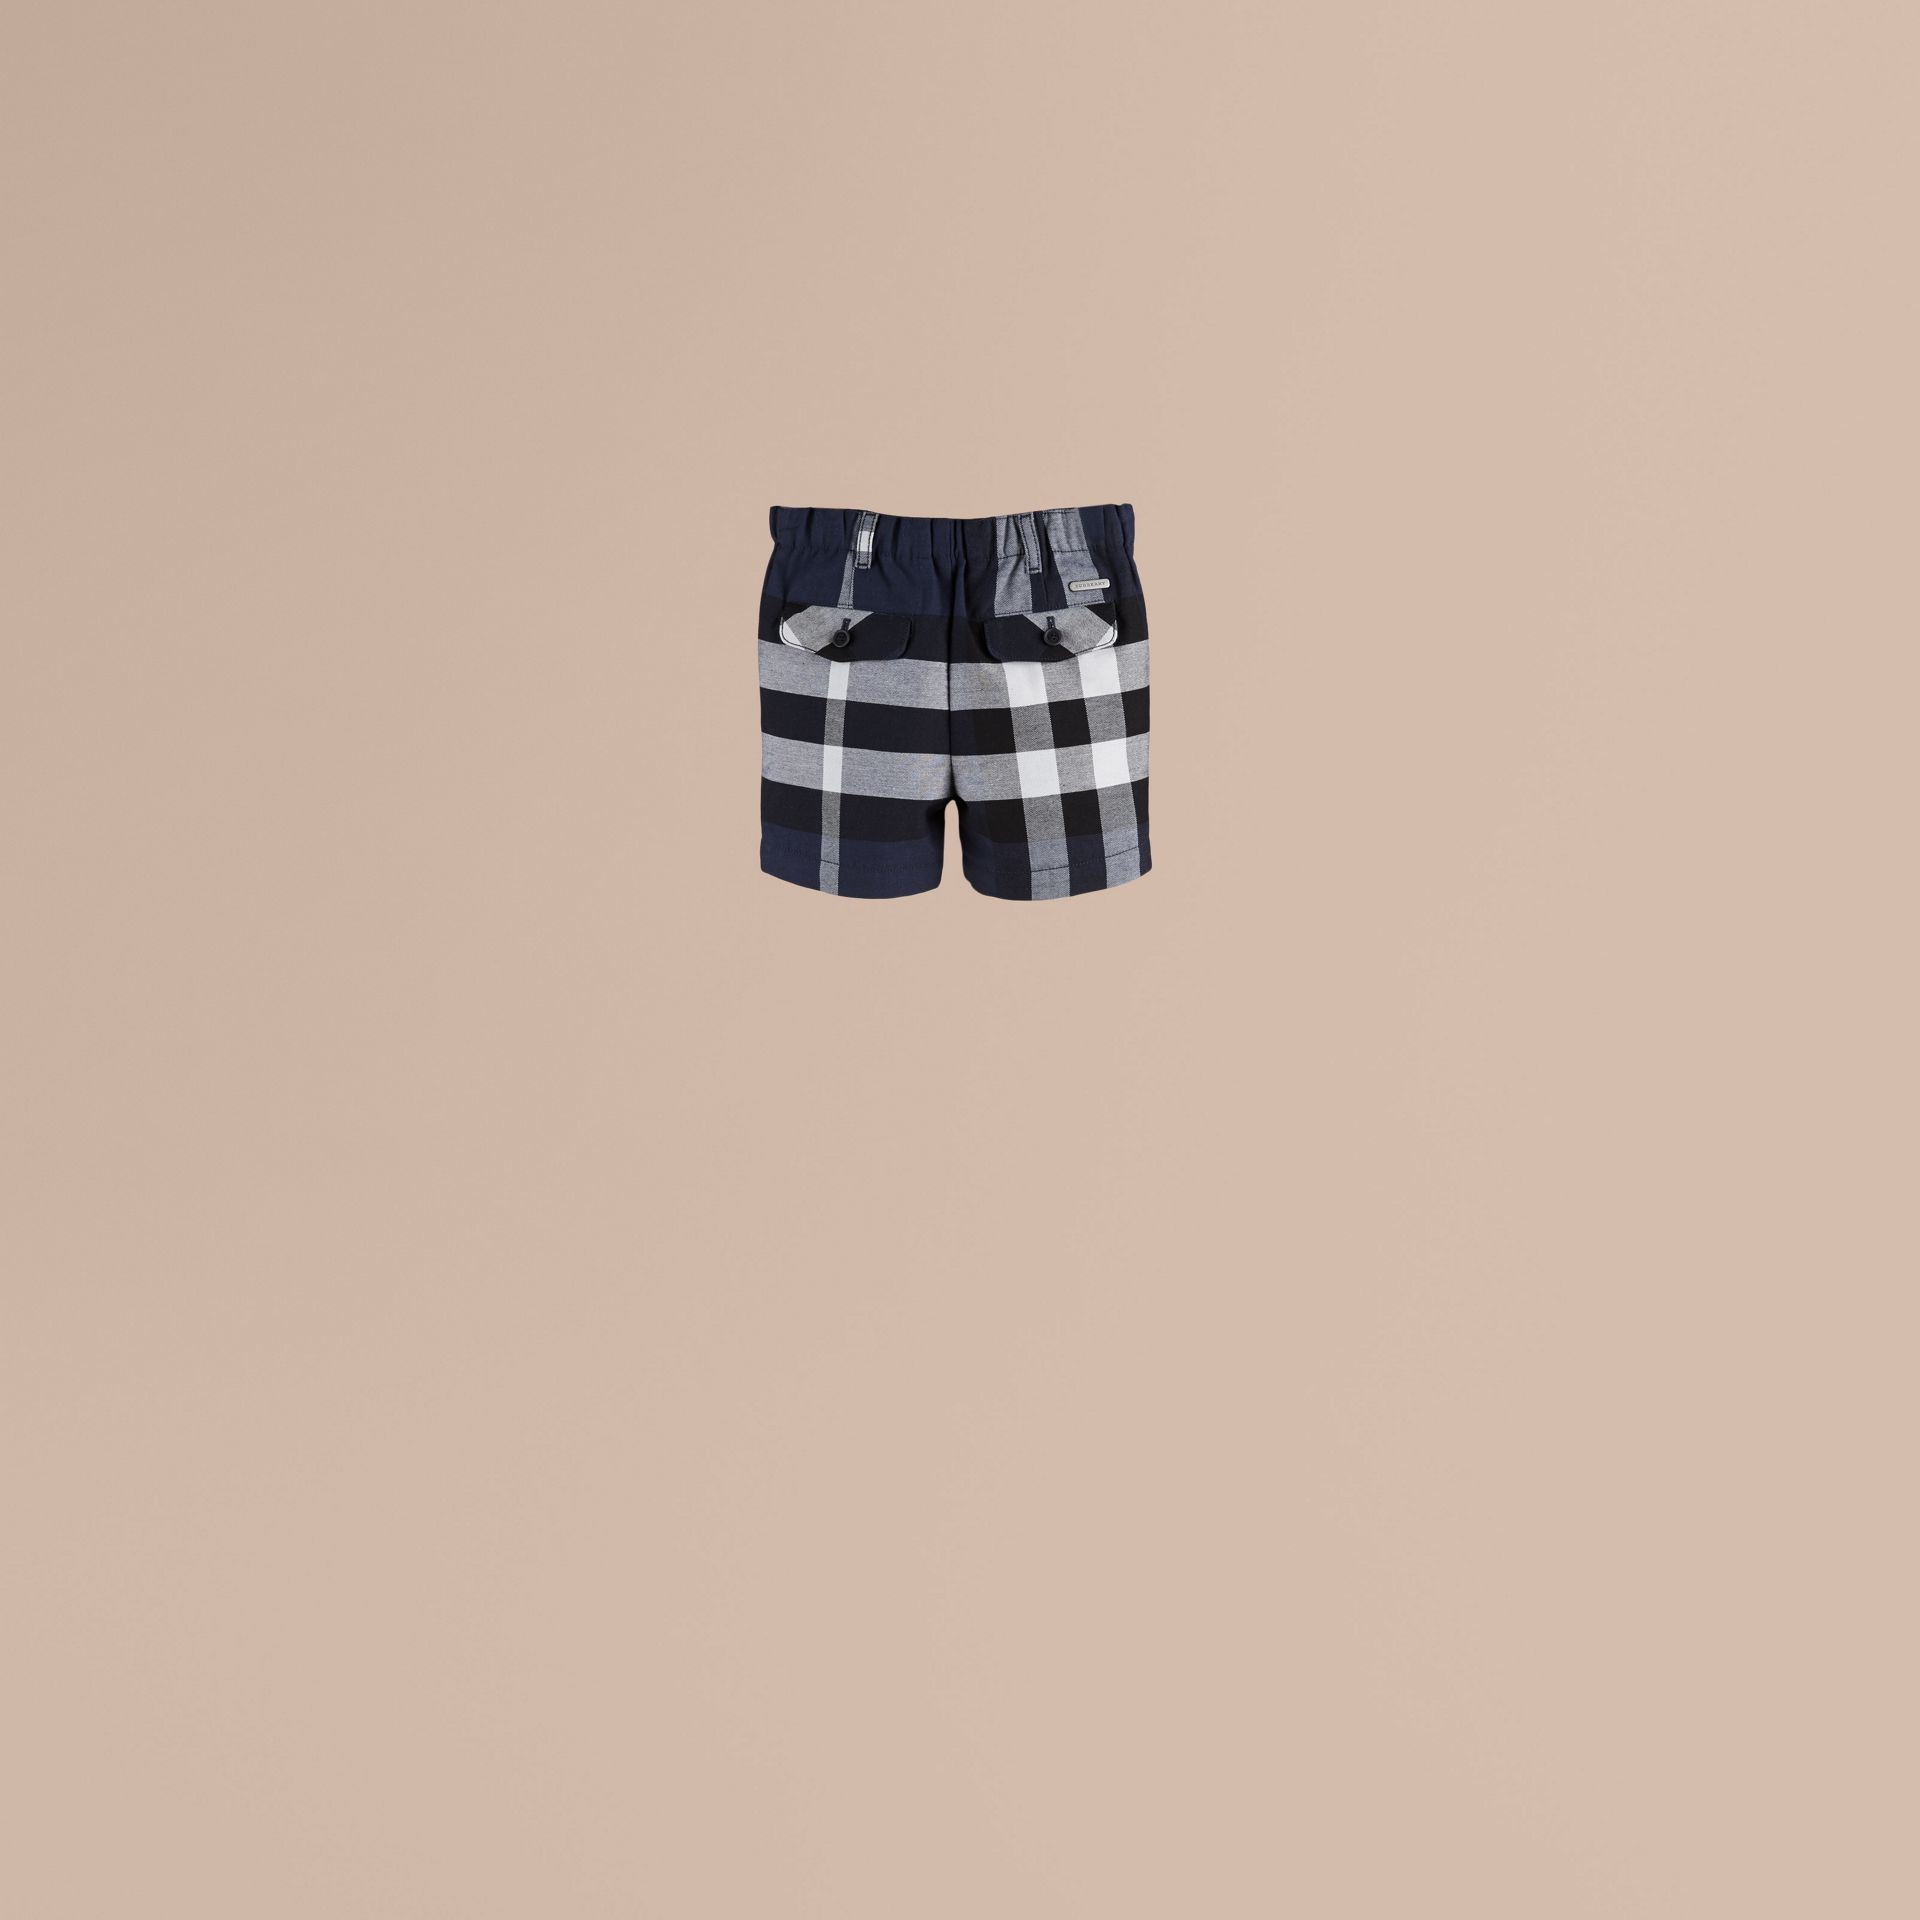 Navy Check Cotton Shorts Navy - gallery image 2